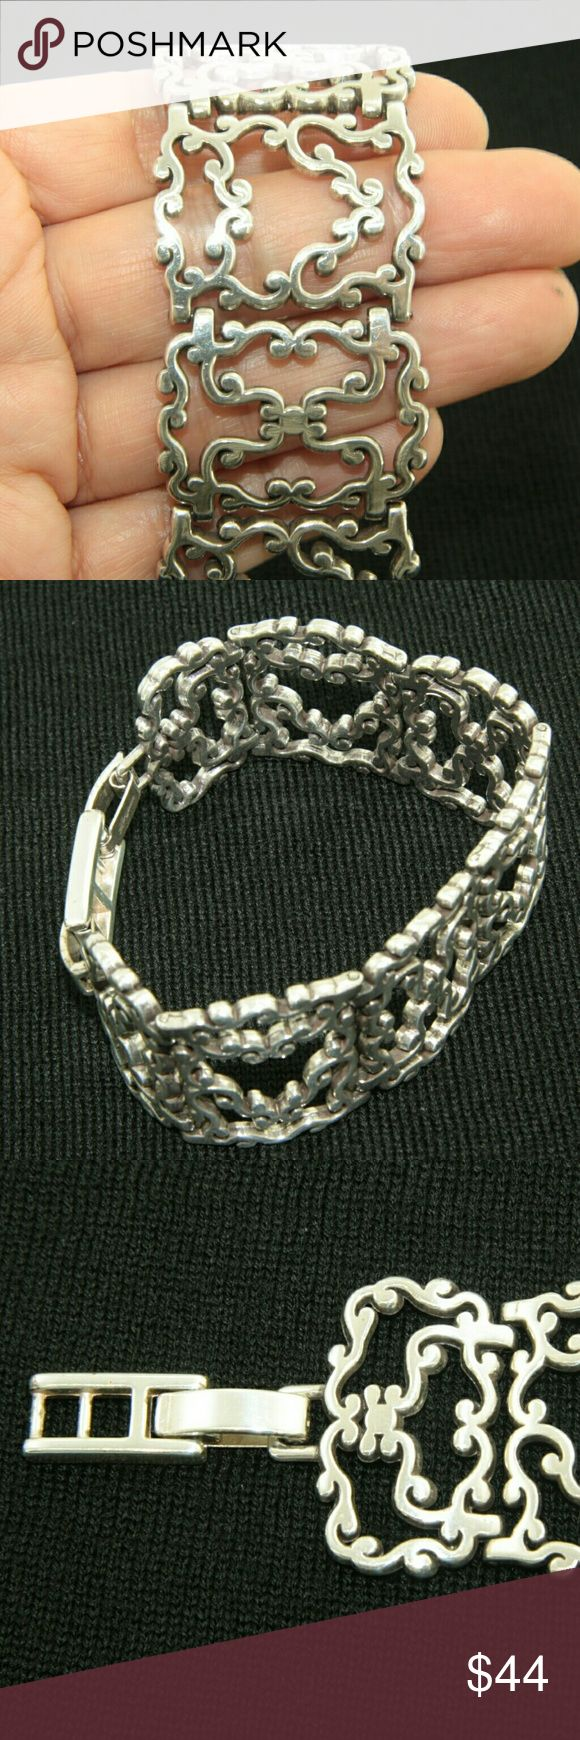 Brighton Bracelet Brighton Bracelet. Silver tone. 1.25 inches tall.  Loose fit. 8 inches in length.  Used item: any wear shown in pictures.  Excellent condition!  Bundle Up!  Offers Always Welcome :) Brighton Jewelry Bracelets